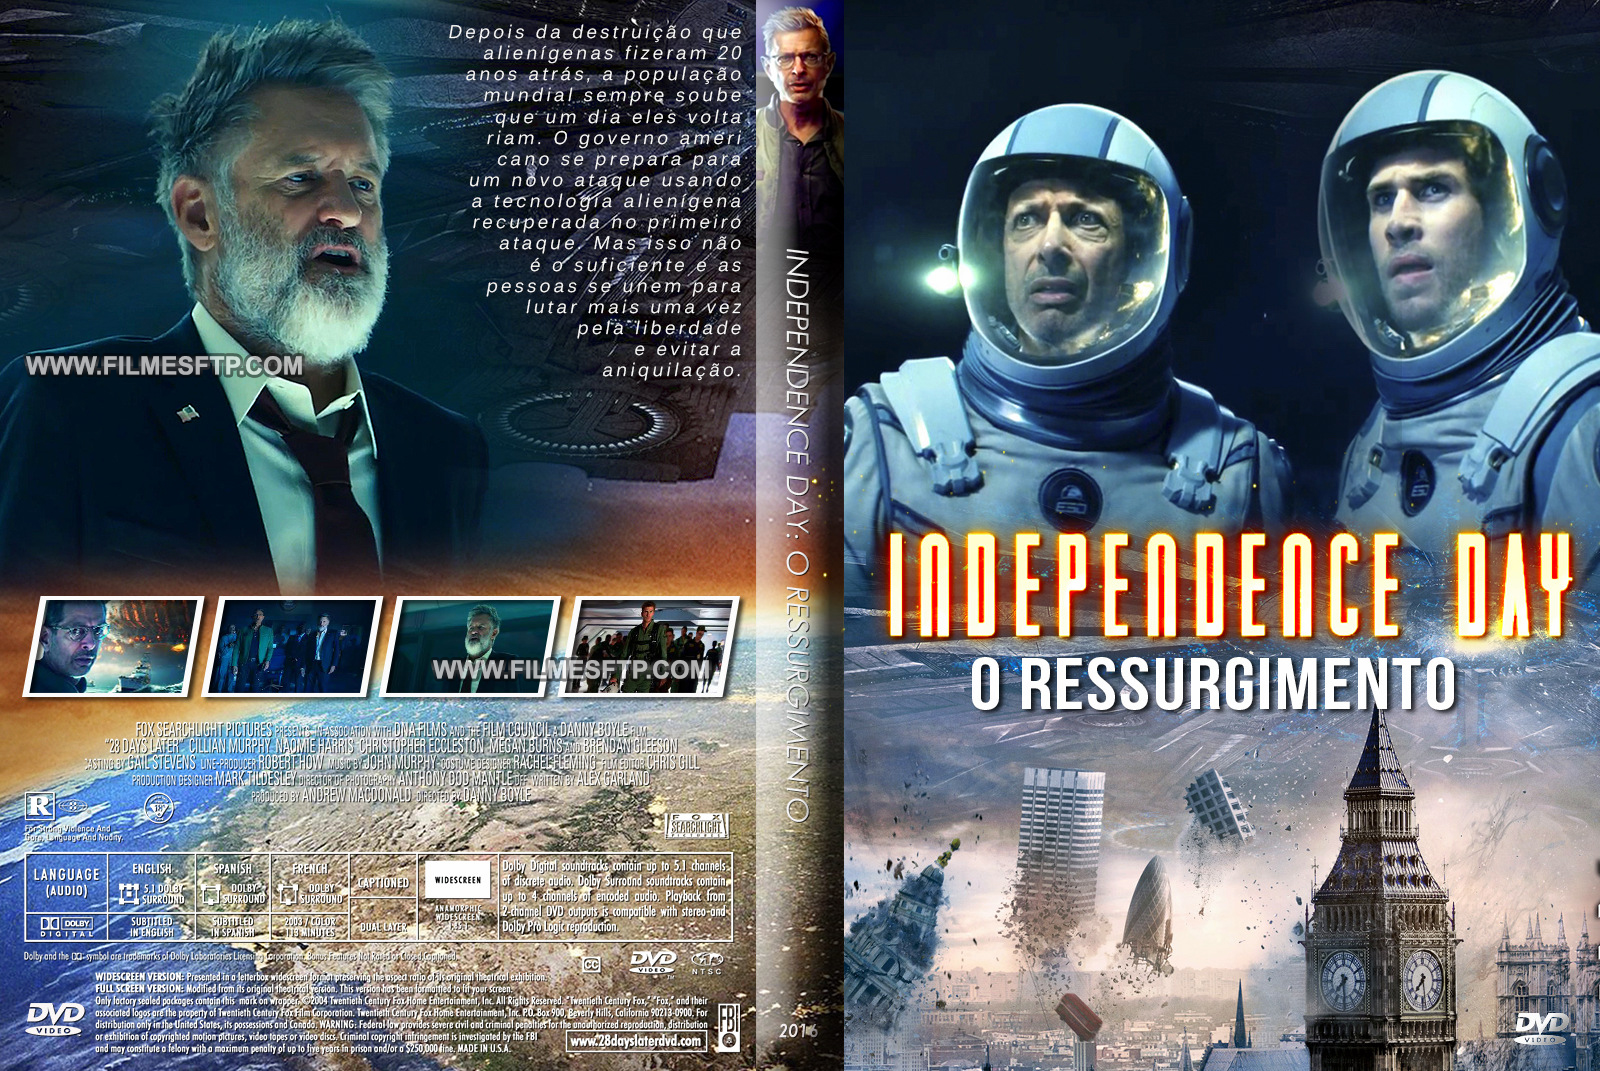 Independence Day O Ressurgimento WEB-DL 720p Dual Áudio Independence Day O Ressurgimento WEB-DL 720p Dual Áudio Independence 2BDay 2BO 2BRessurgimento 2B2016 2BCapa 2B2